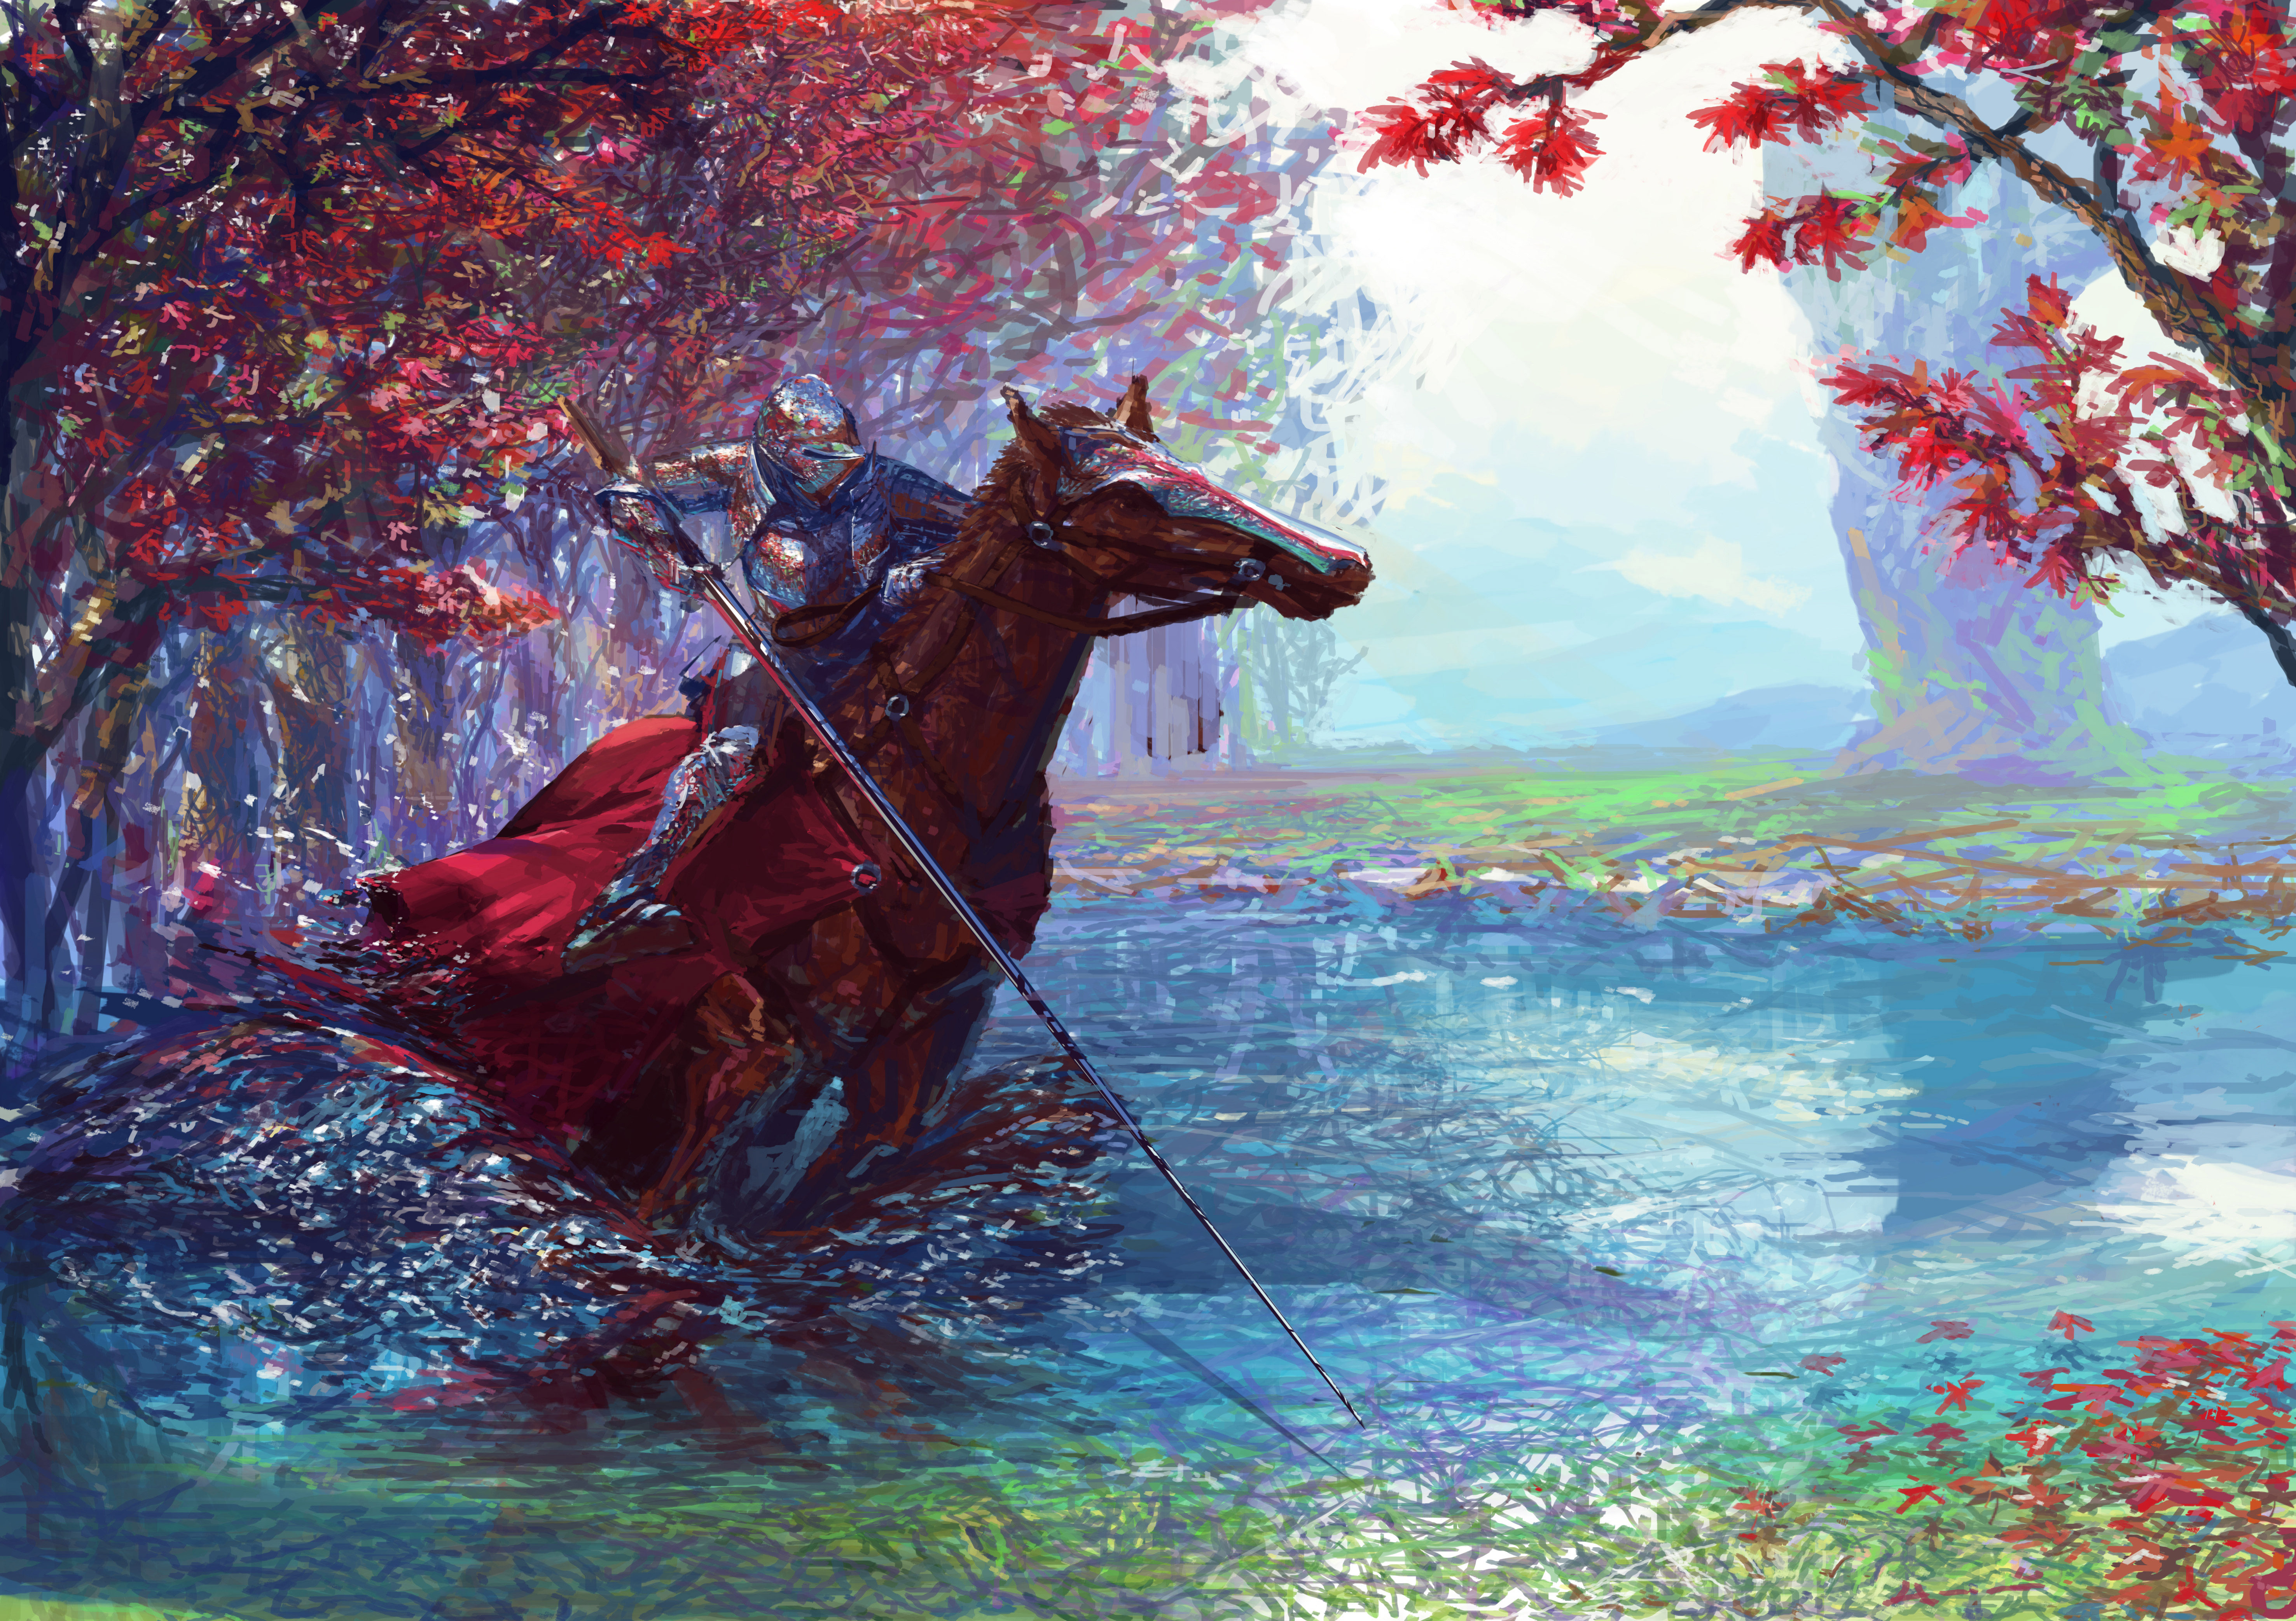 Knight On Horse With Sword 5k, HD Artist, 4k Wallpapers, Images, Backgrounds, Photos ...  Knight